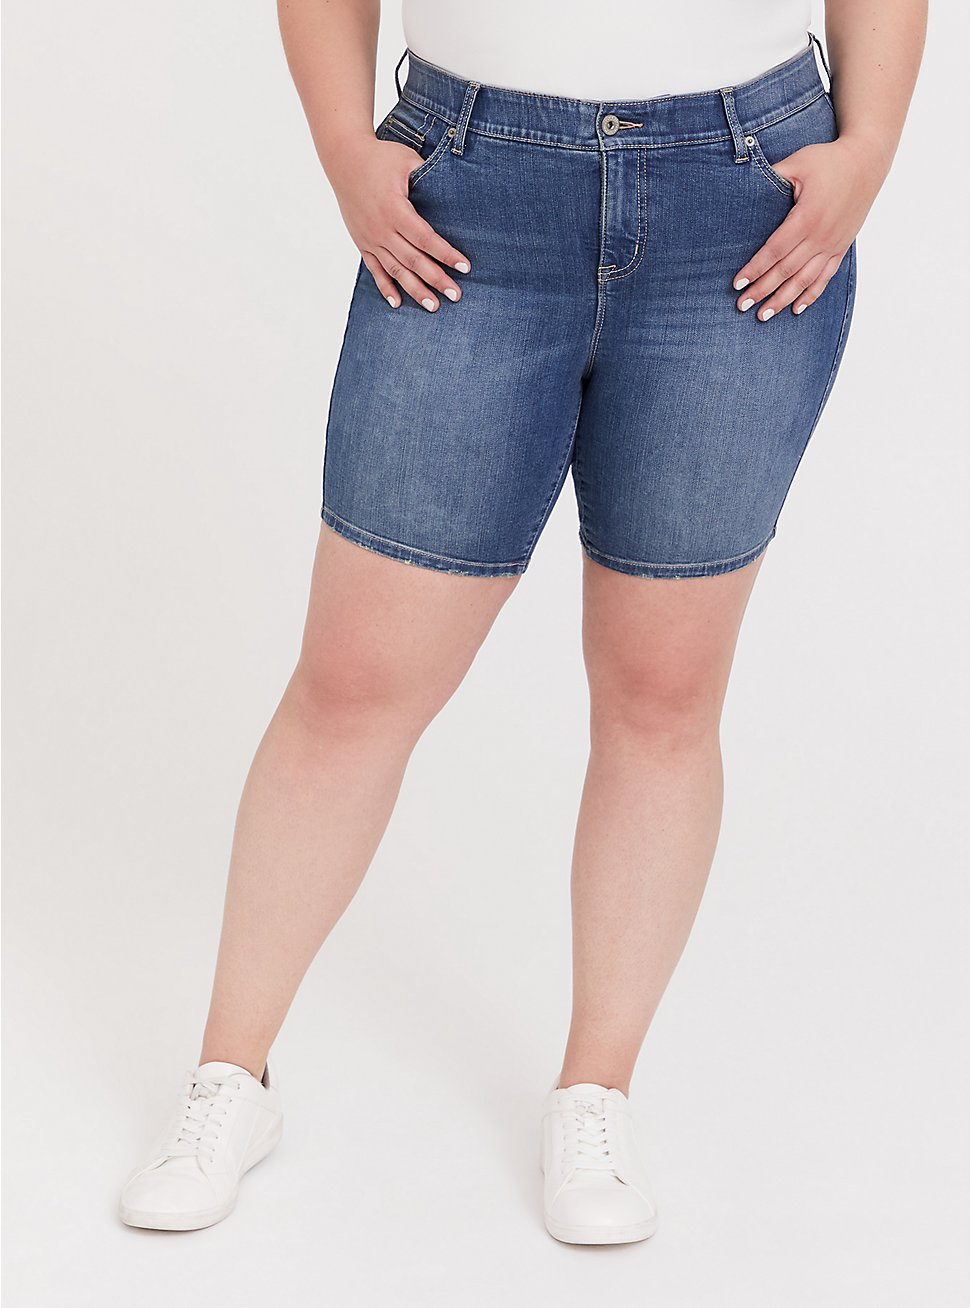 Bombshell Skinny Bermuda Short - Premium Stretch Medium Wash, GREENWICH, hi-res